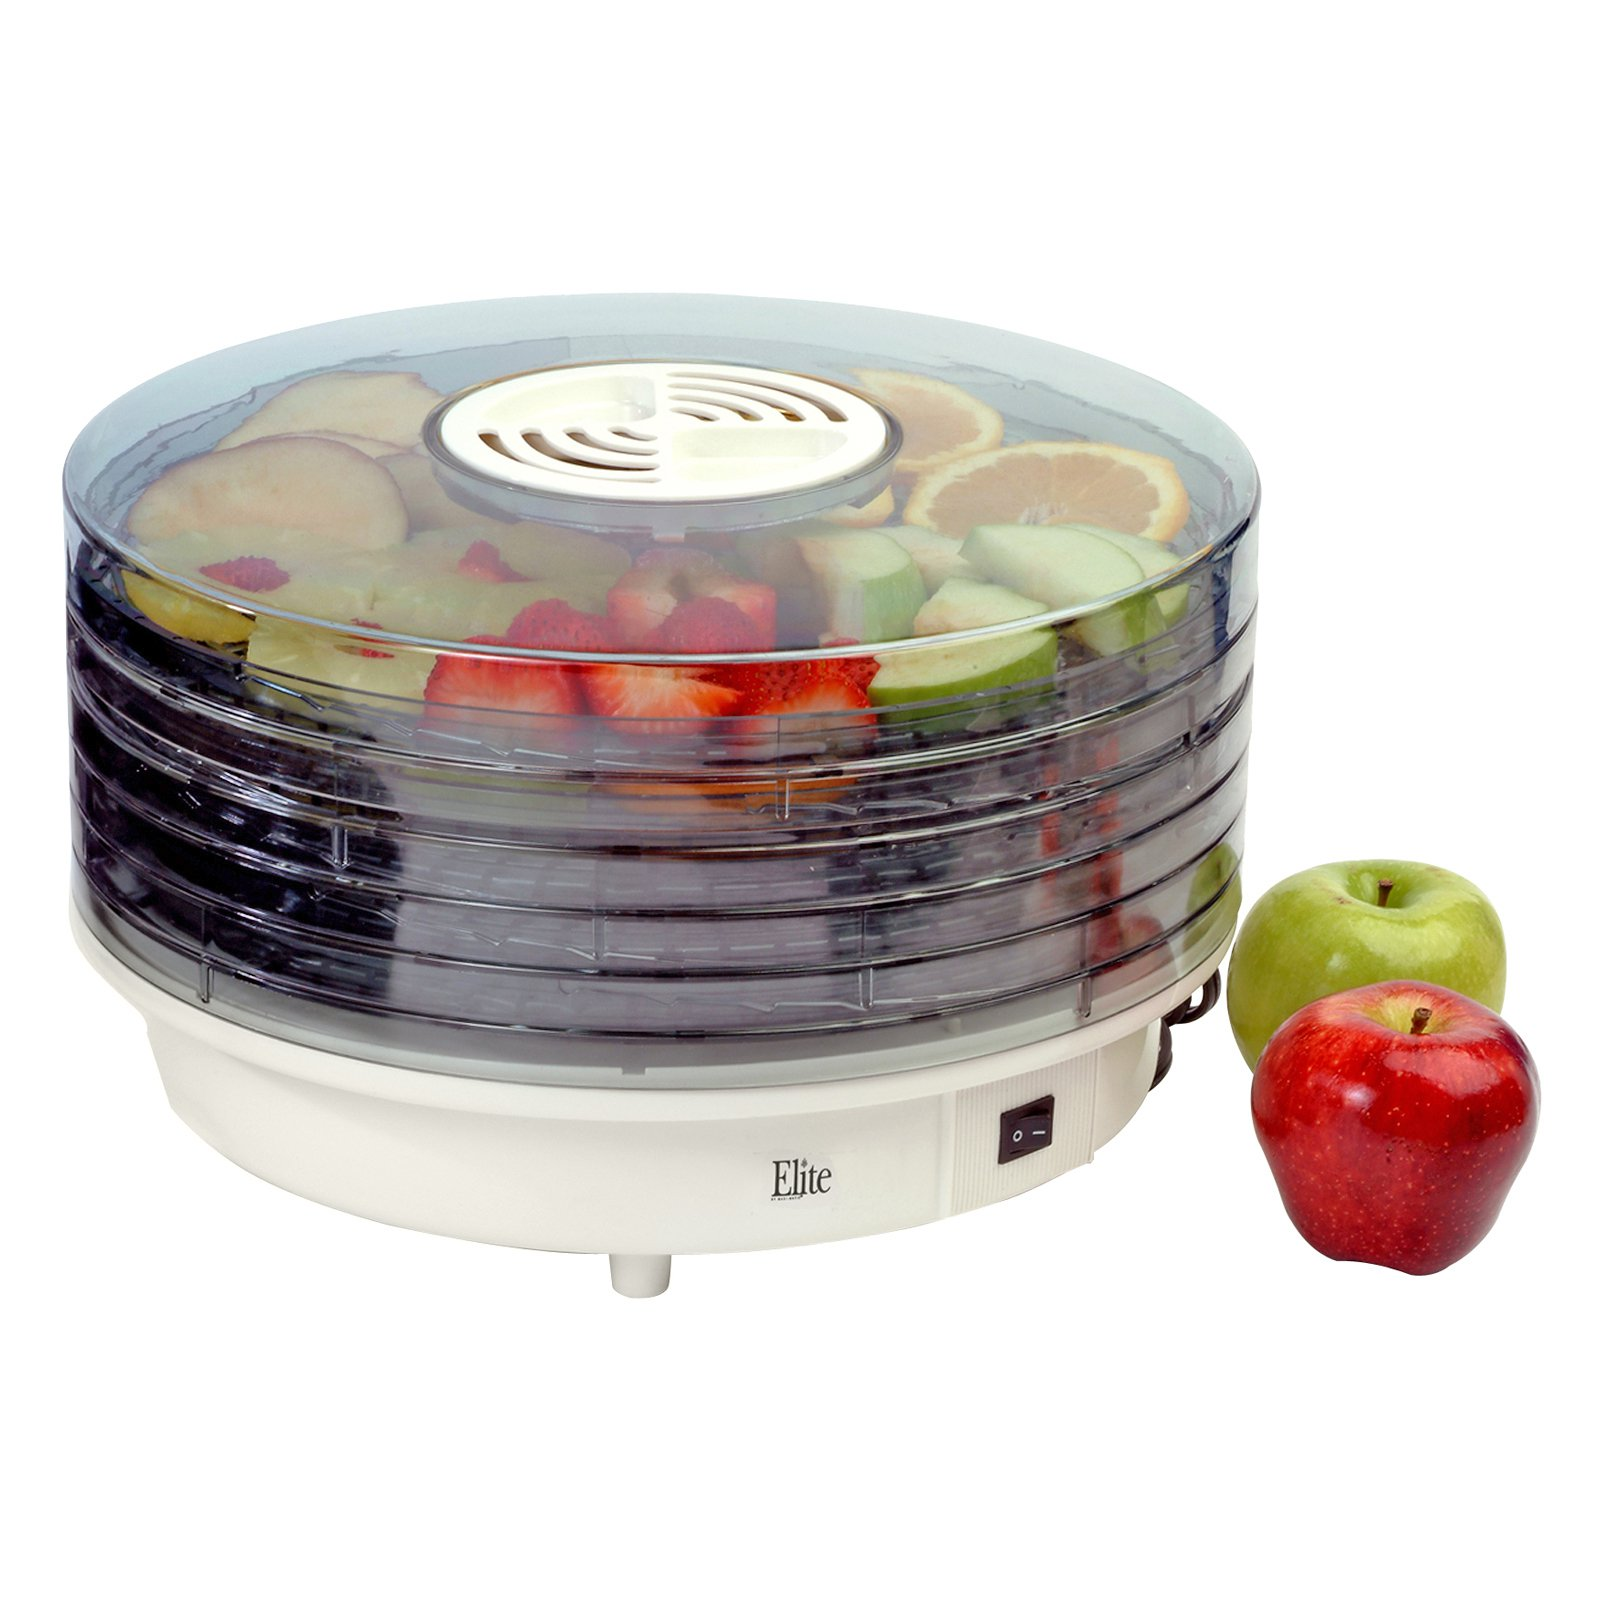 Maxi Matic Elite Gourmet 5-Tray Rotating Food Dehydrator, White